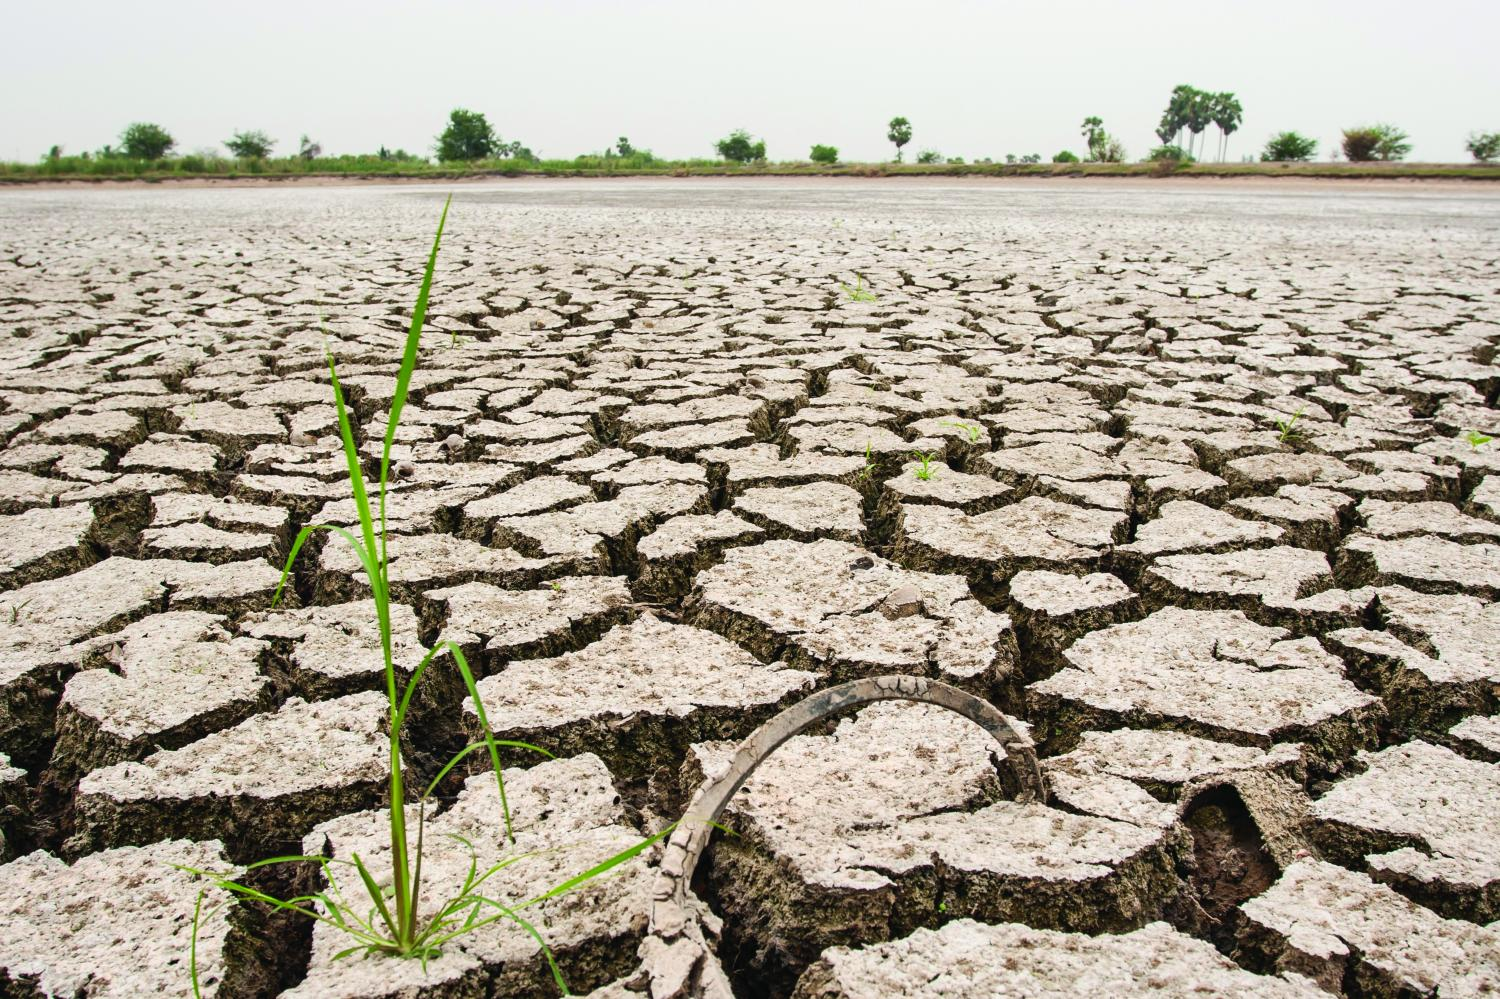 A file photo shows parched land as farmers wait for rain. Government help for them often comes too little, too late.(Bangkok Post photo)